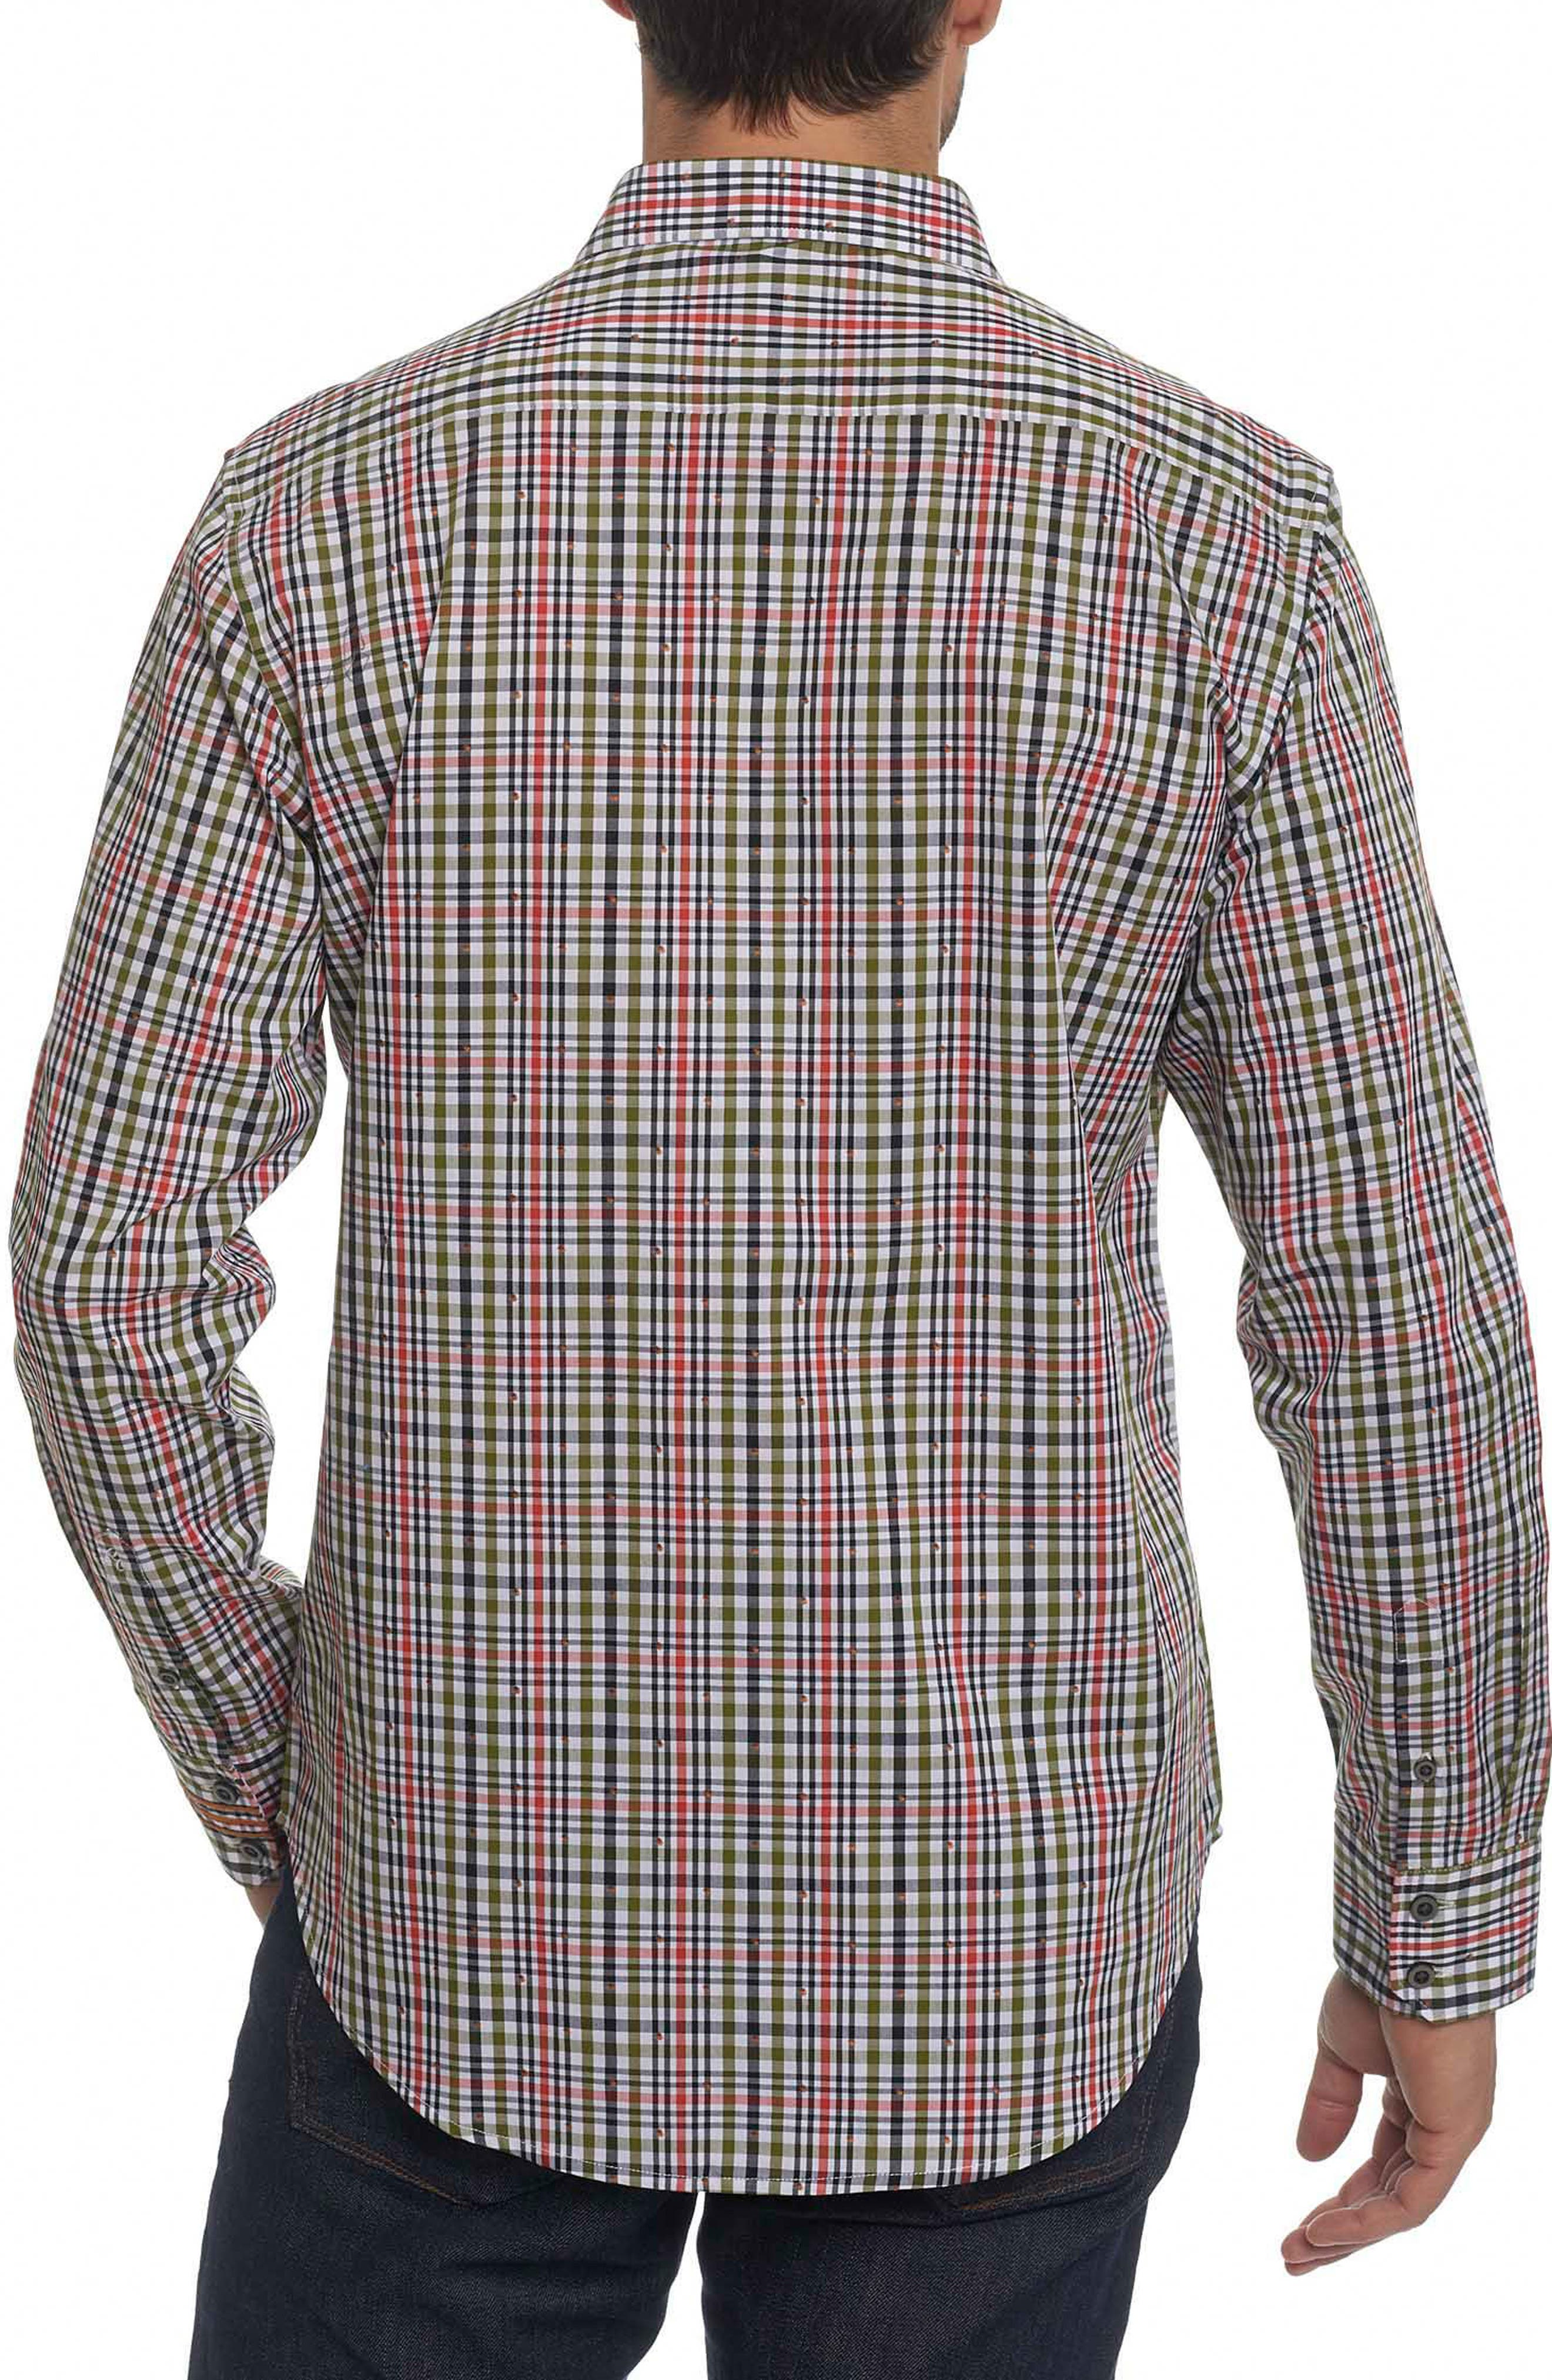 Cape Vincent Classic Fit Dobby Check Sport Shirt,                             Alternate thumbnail 2, color,                             Olive